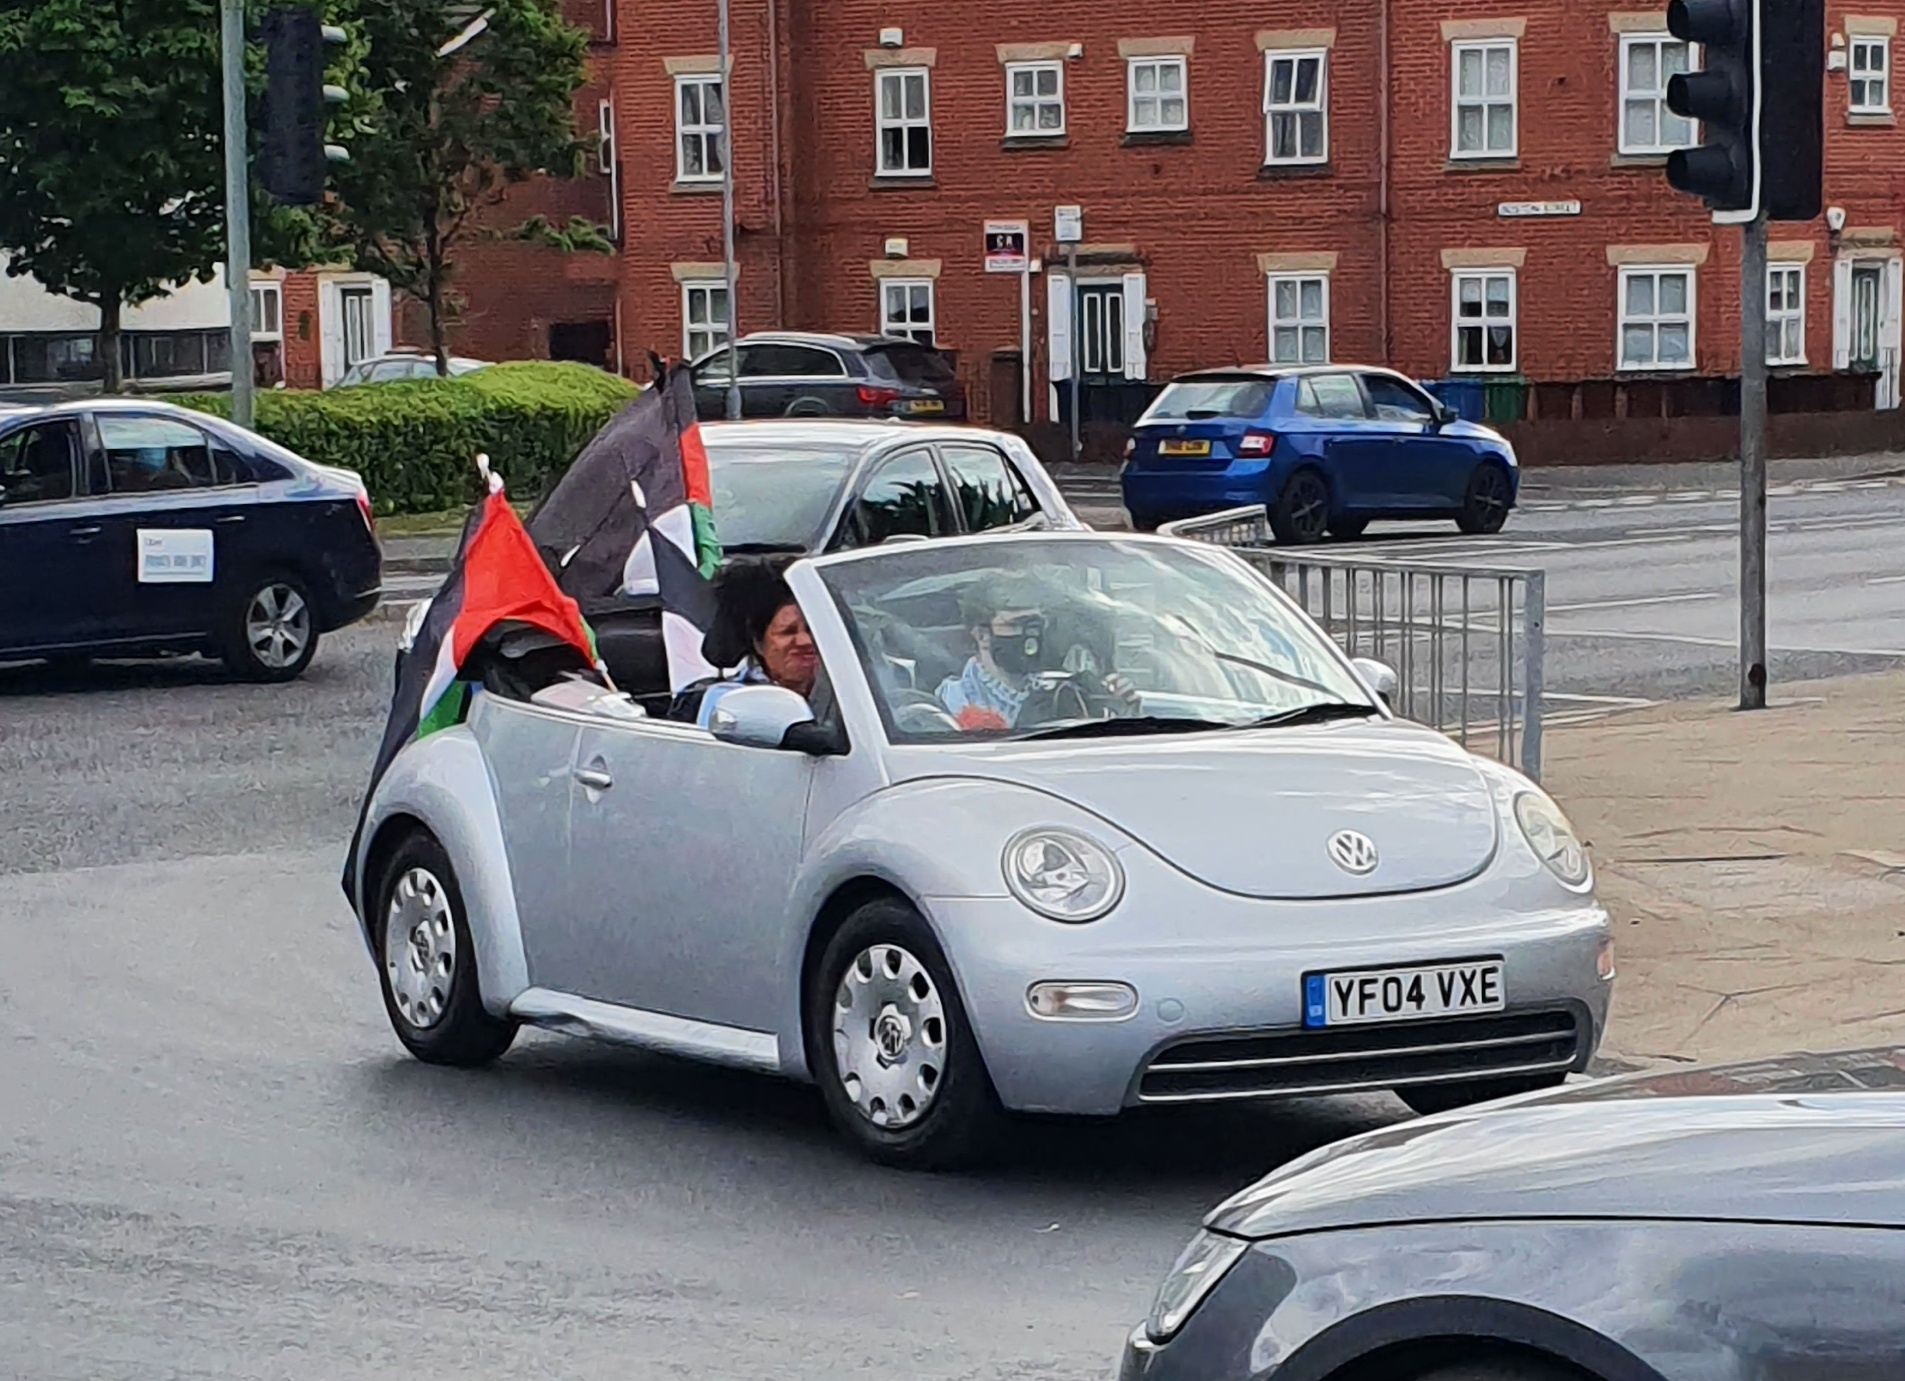 Motorists showing their support for the march